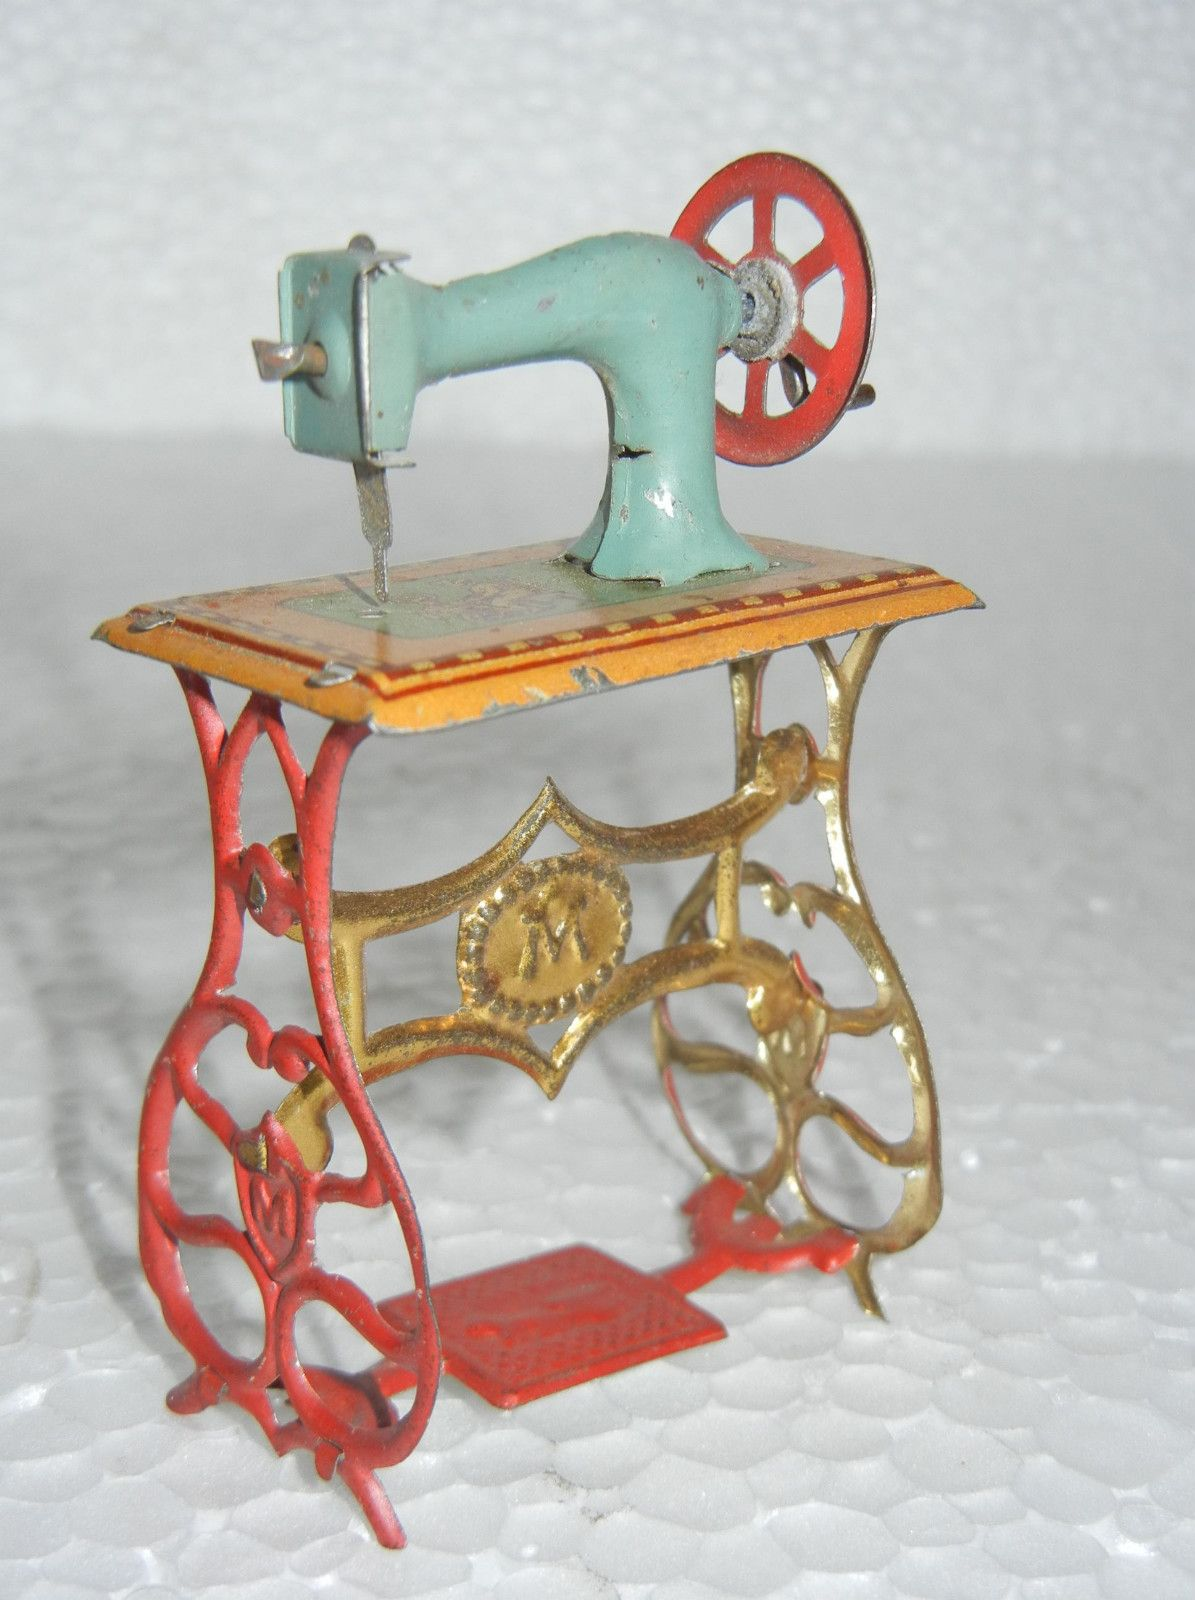 Vintage Toy Sewing Machine